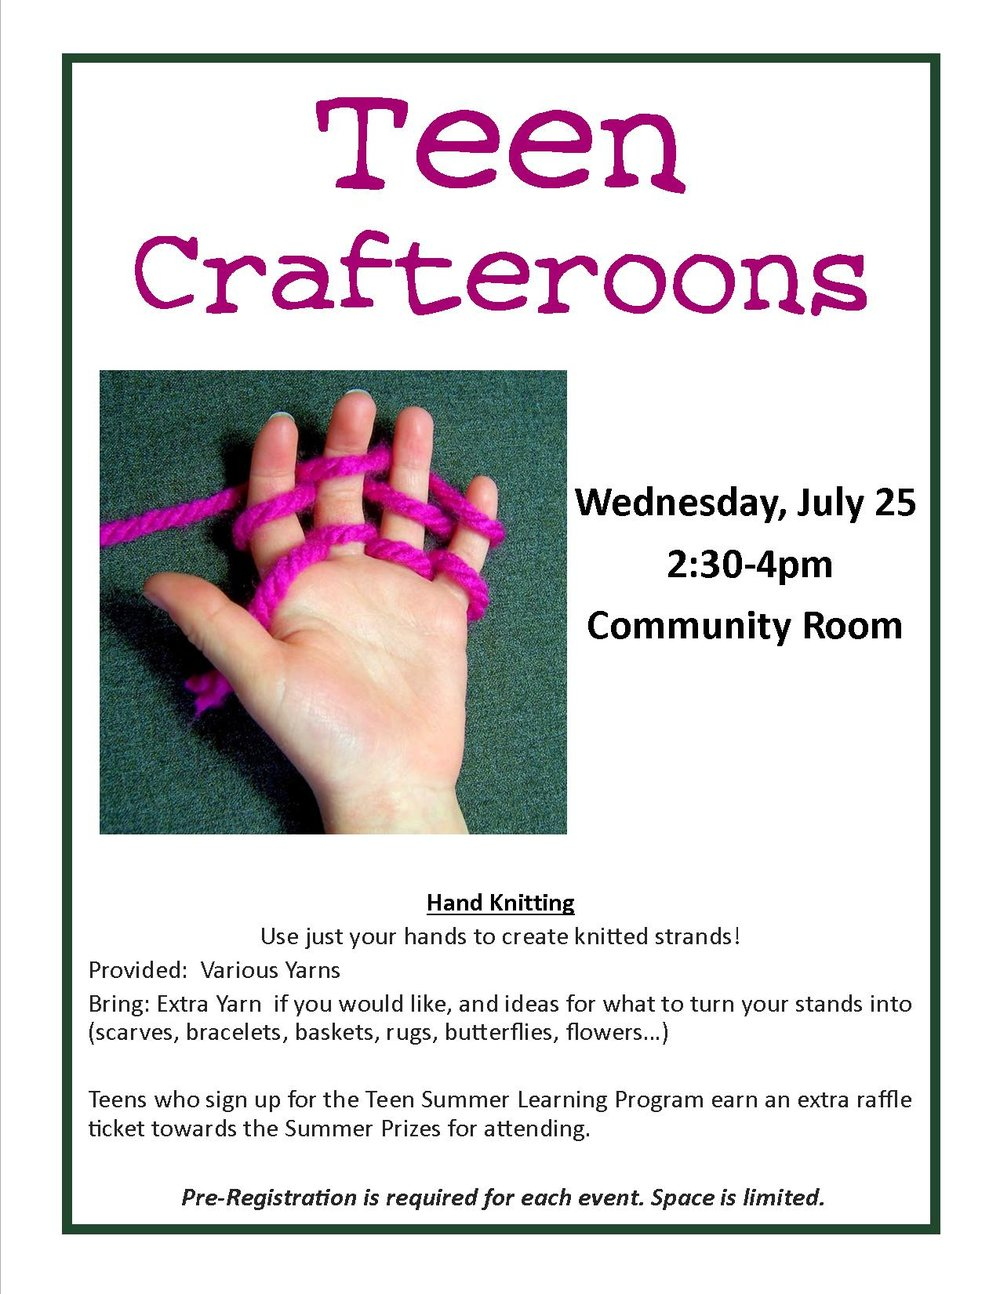 teen crafternoons hand knitting.jpg